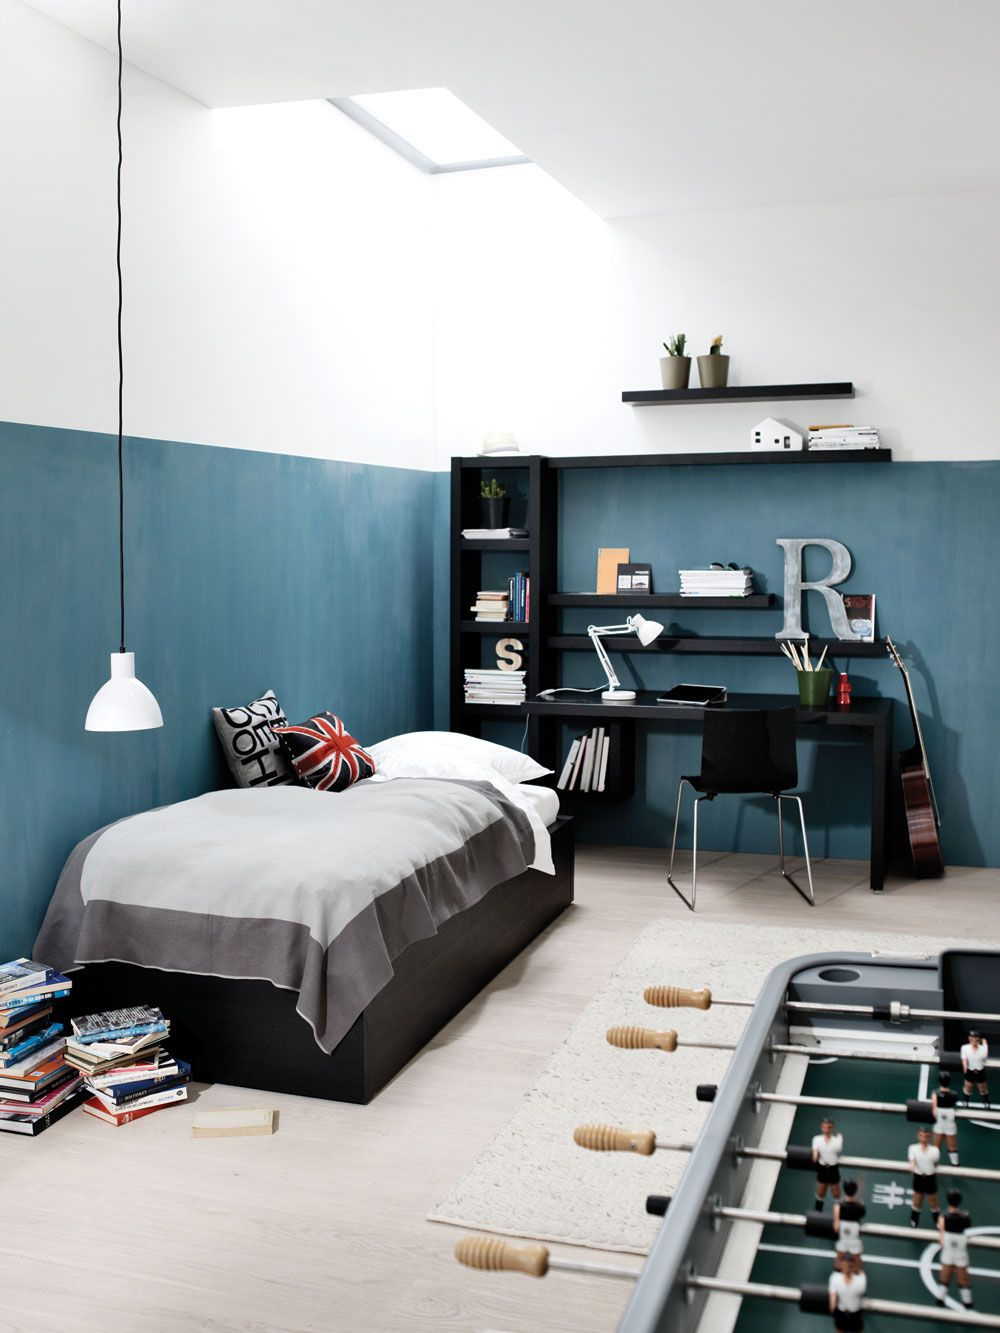 Storage bed - perfect for the teenage room! | Desks | Pinterest ...